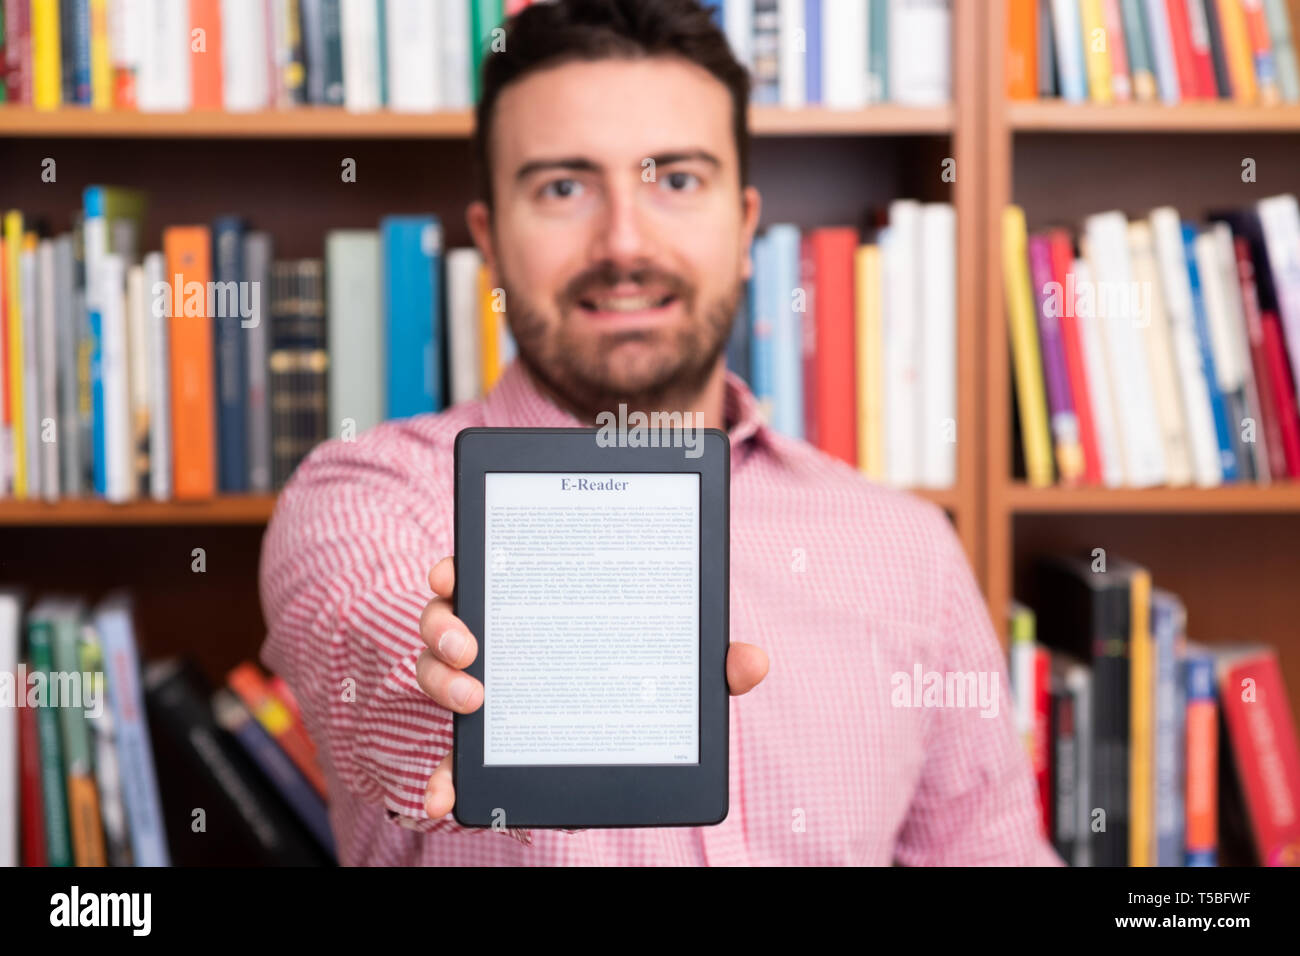 Holding in hands a modern ebook reader and paper books in the background - Stock Image